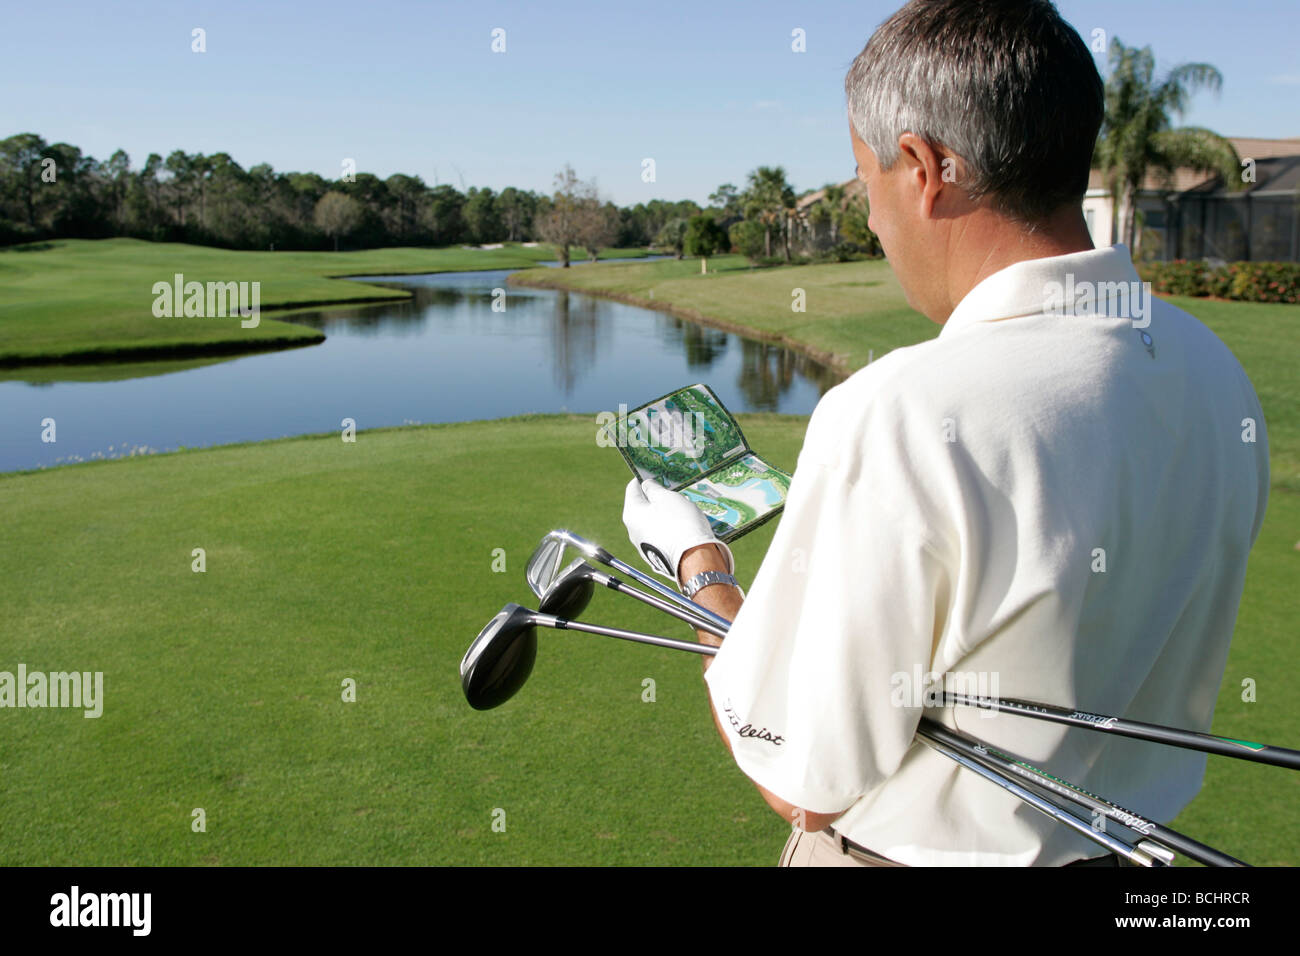 A Golfer studies a course card before teeing off. - Stock Image